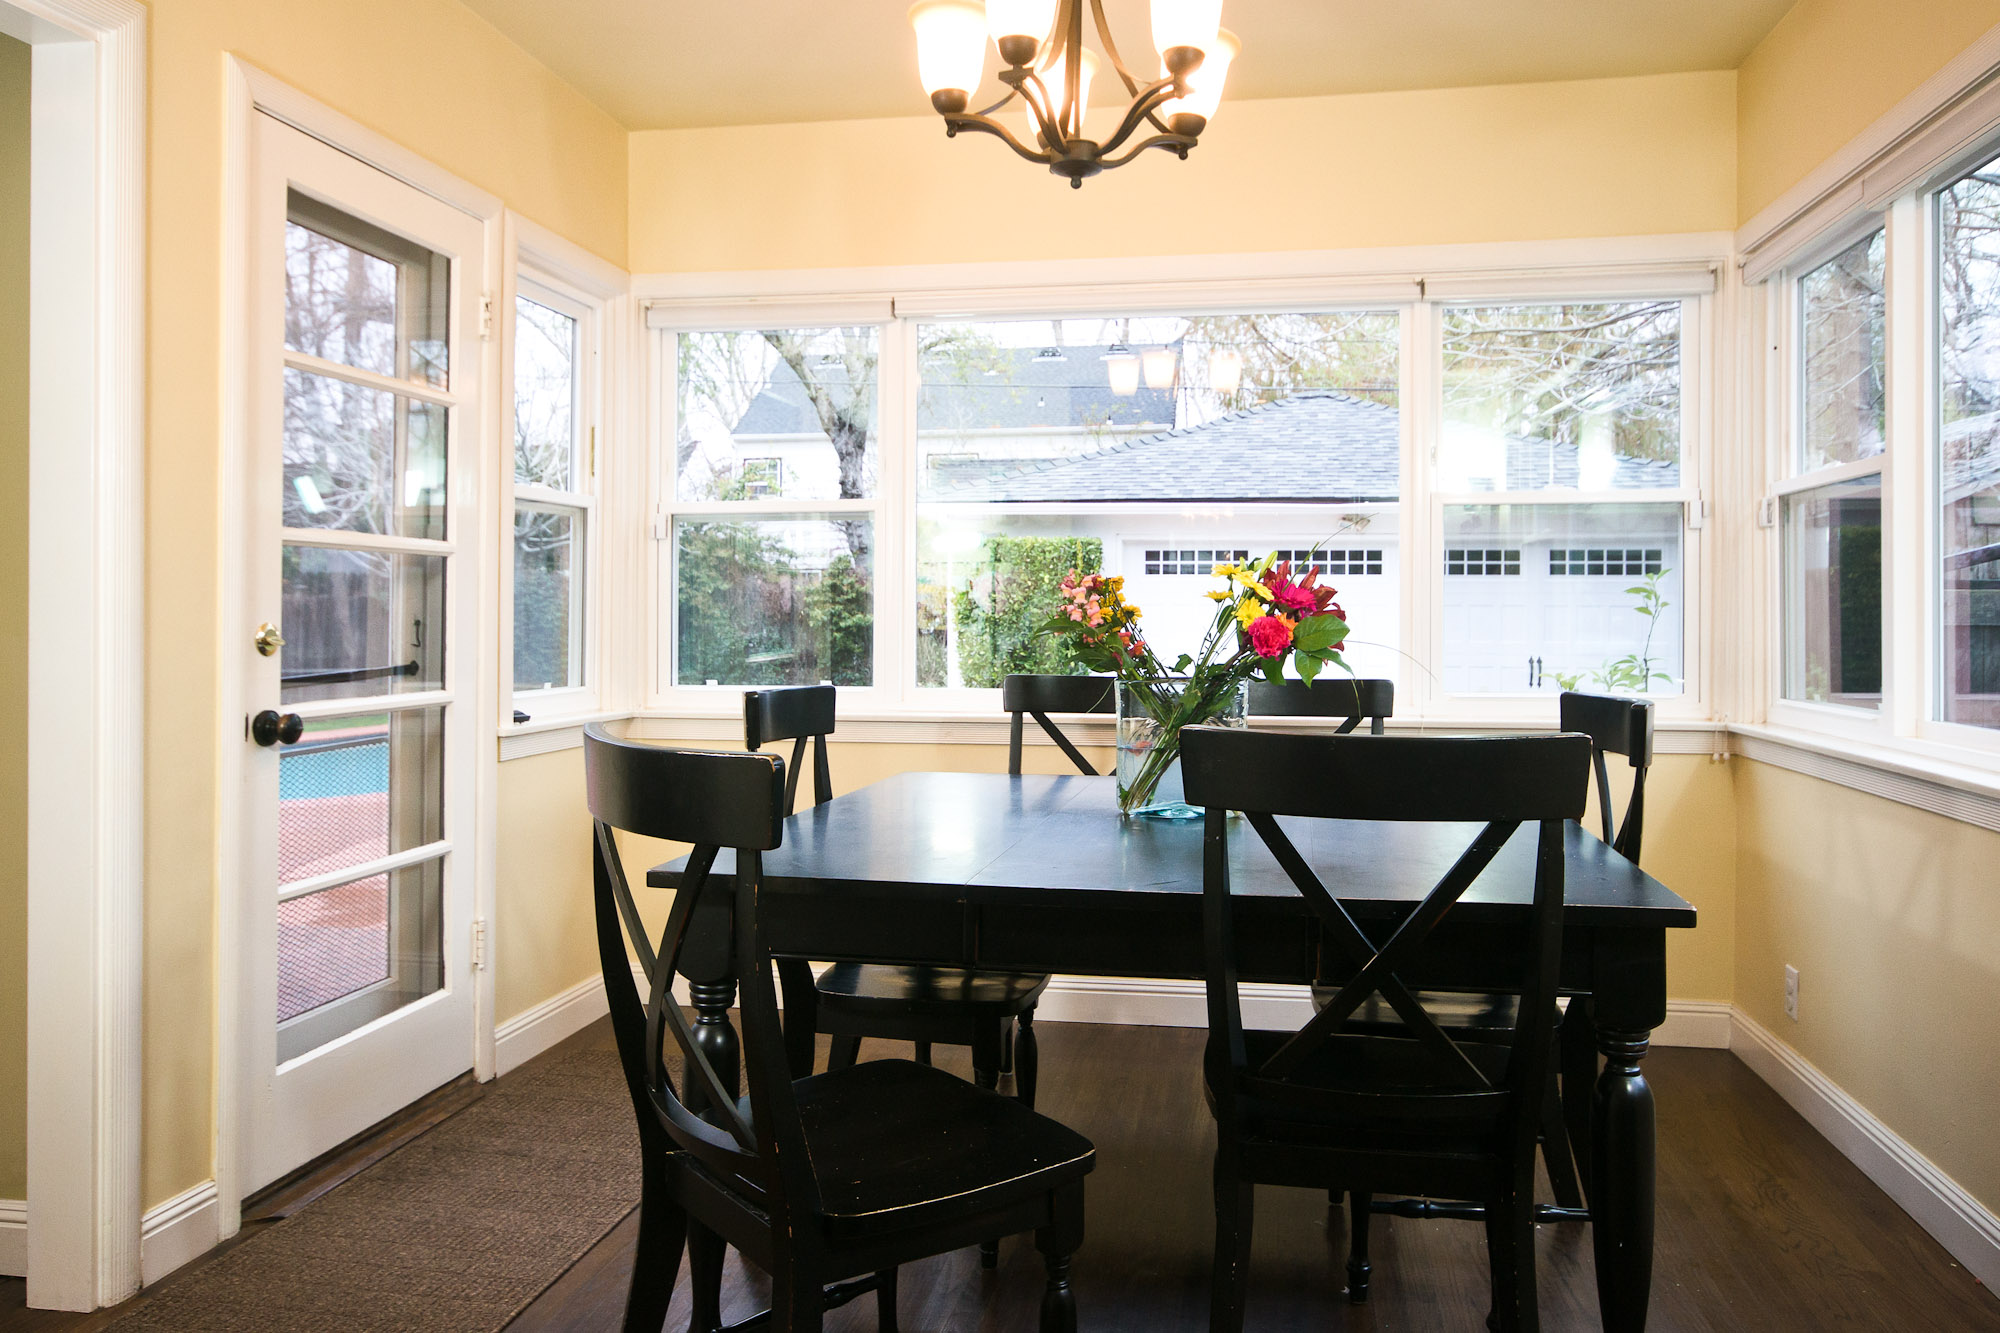 20140303-Breakfast Nook.jpg